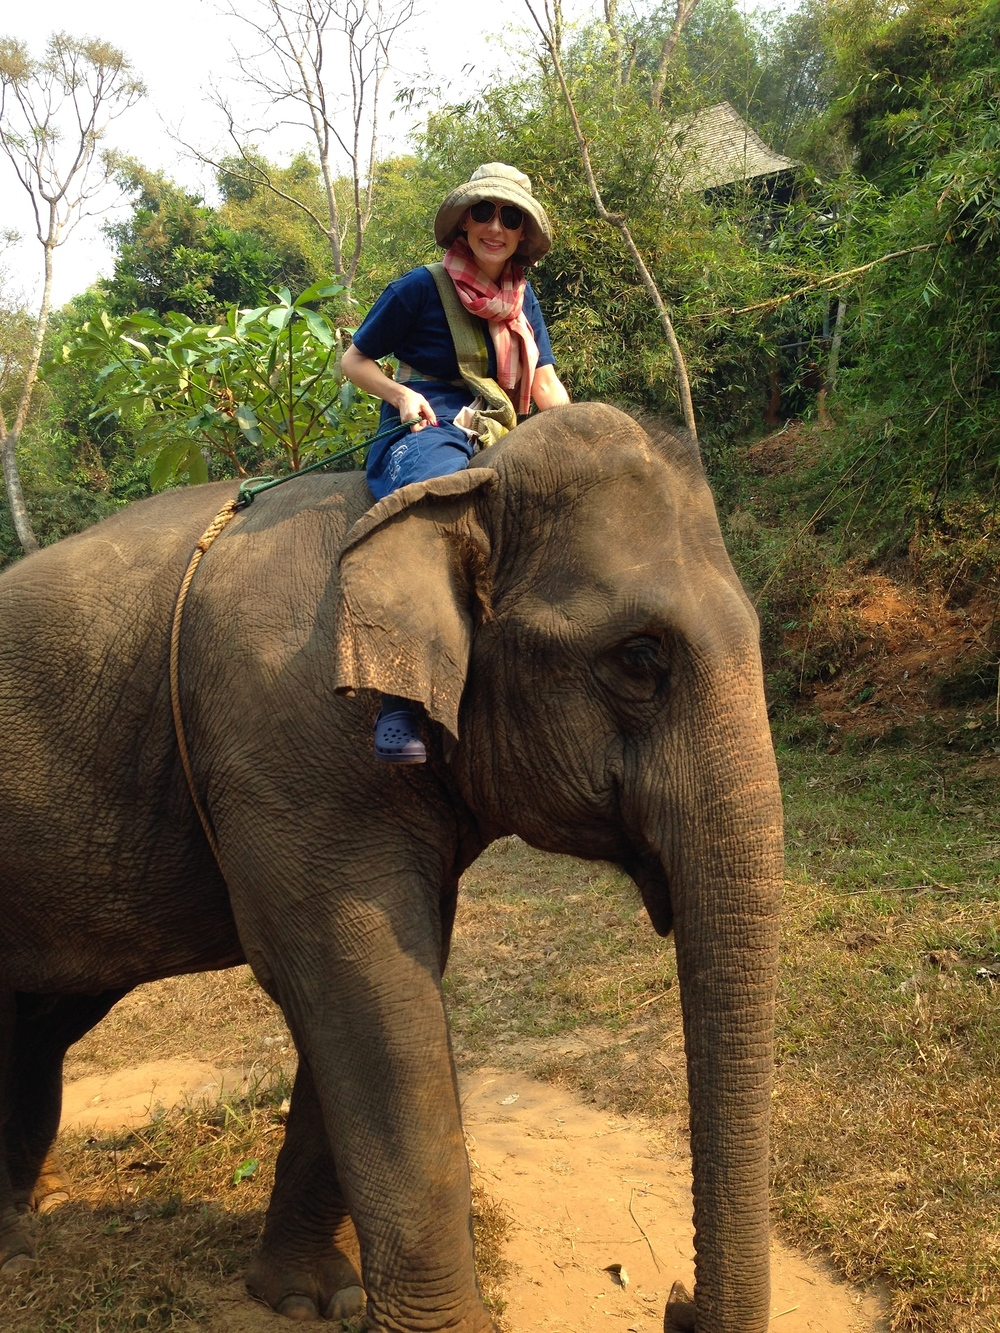 Thailand. Learning how to ride an elephant at the Four Seasons Tented Camp Golden Triangle.